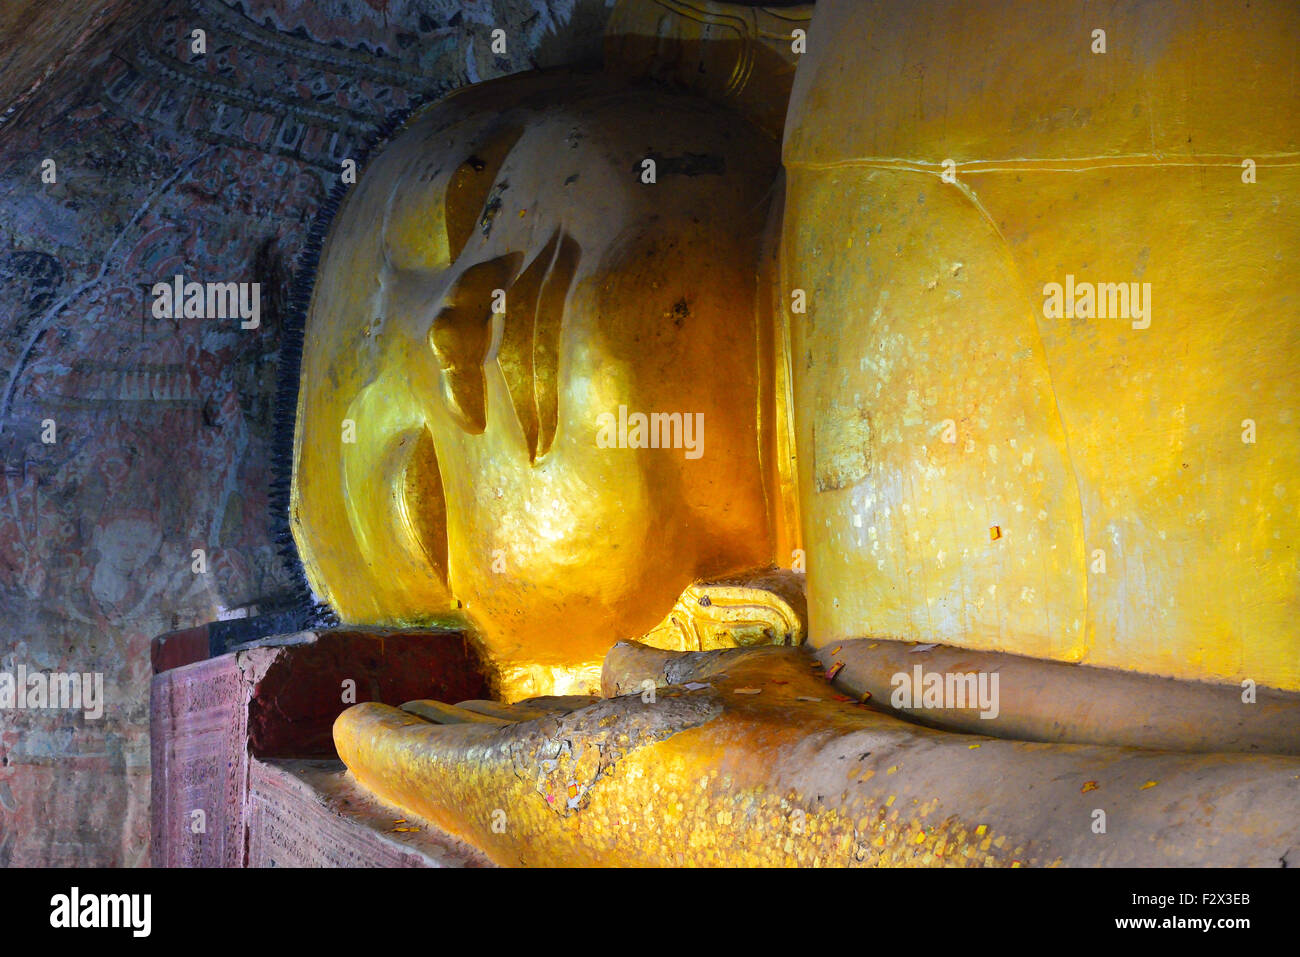 Gold head of giant lying buddha at the Hpo Win Daung cave complex also known as Pho Win Taung caves, Upper Burma, Myanmar (formerly Burma) Stock Photo